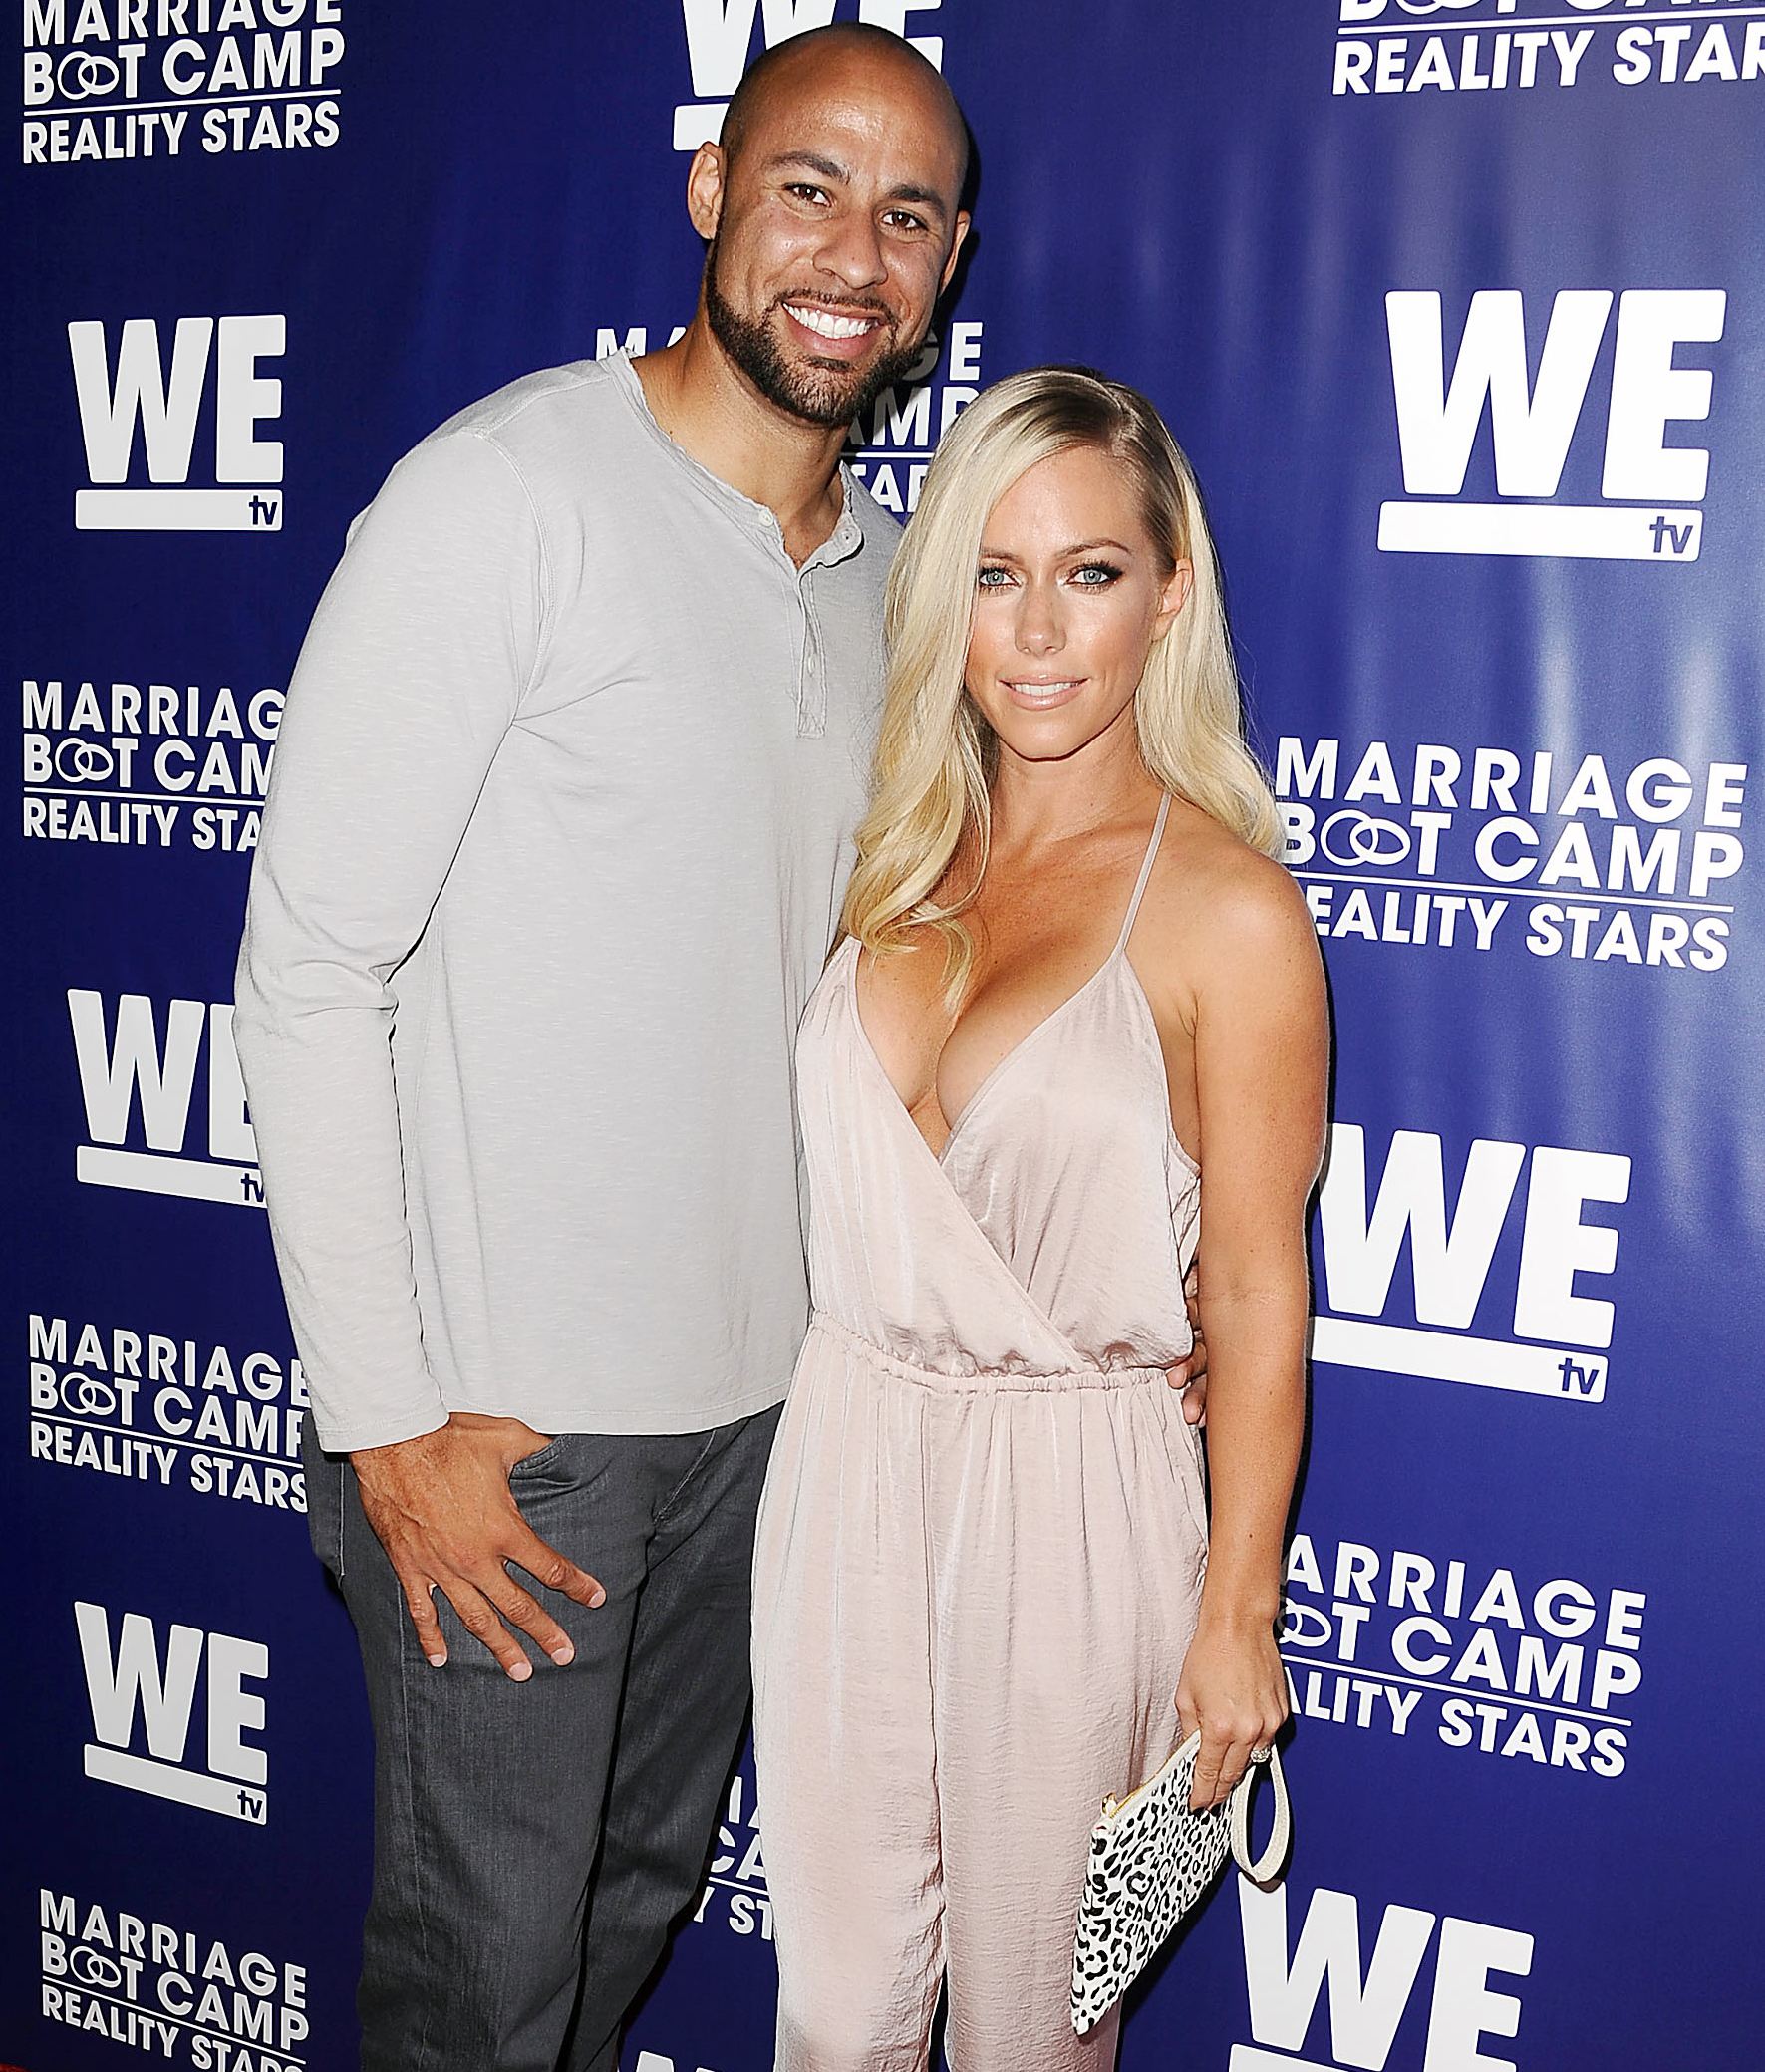 Kendra Wilkinson Baskett having marital problems